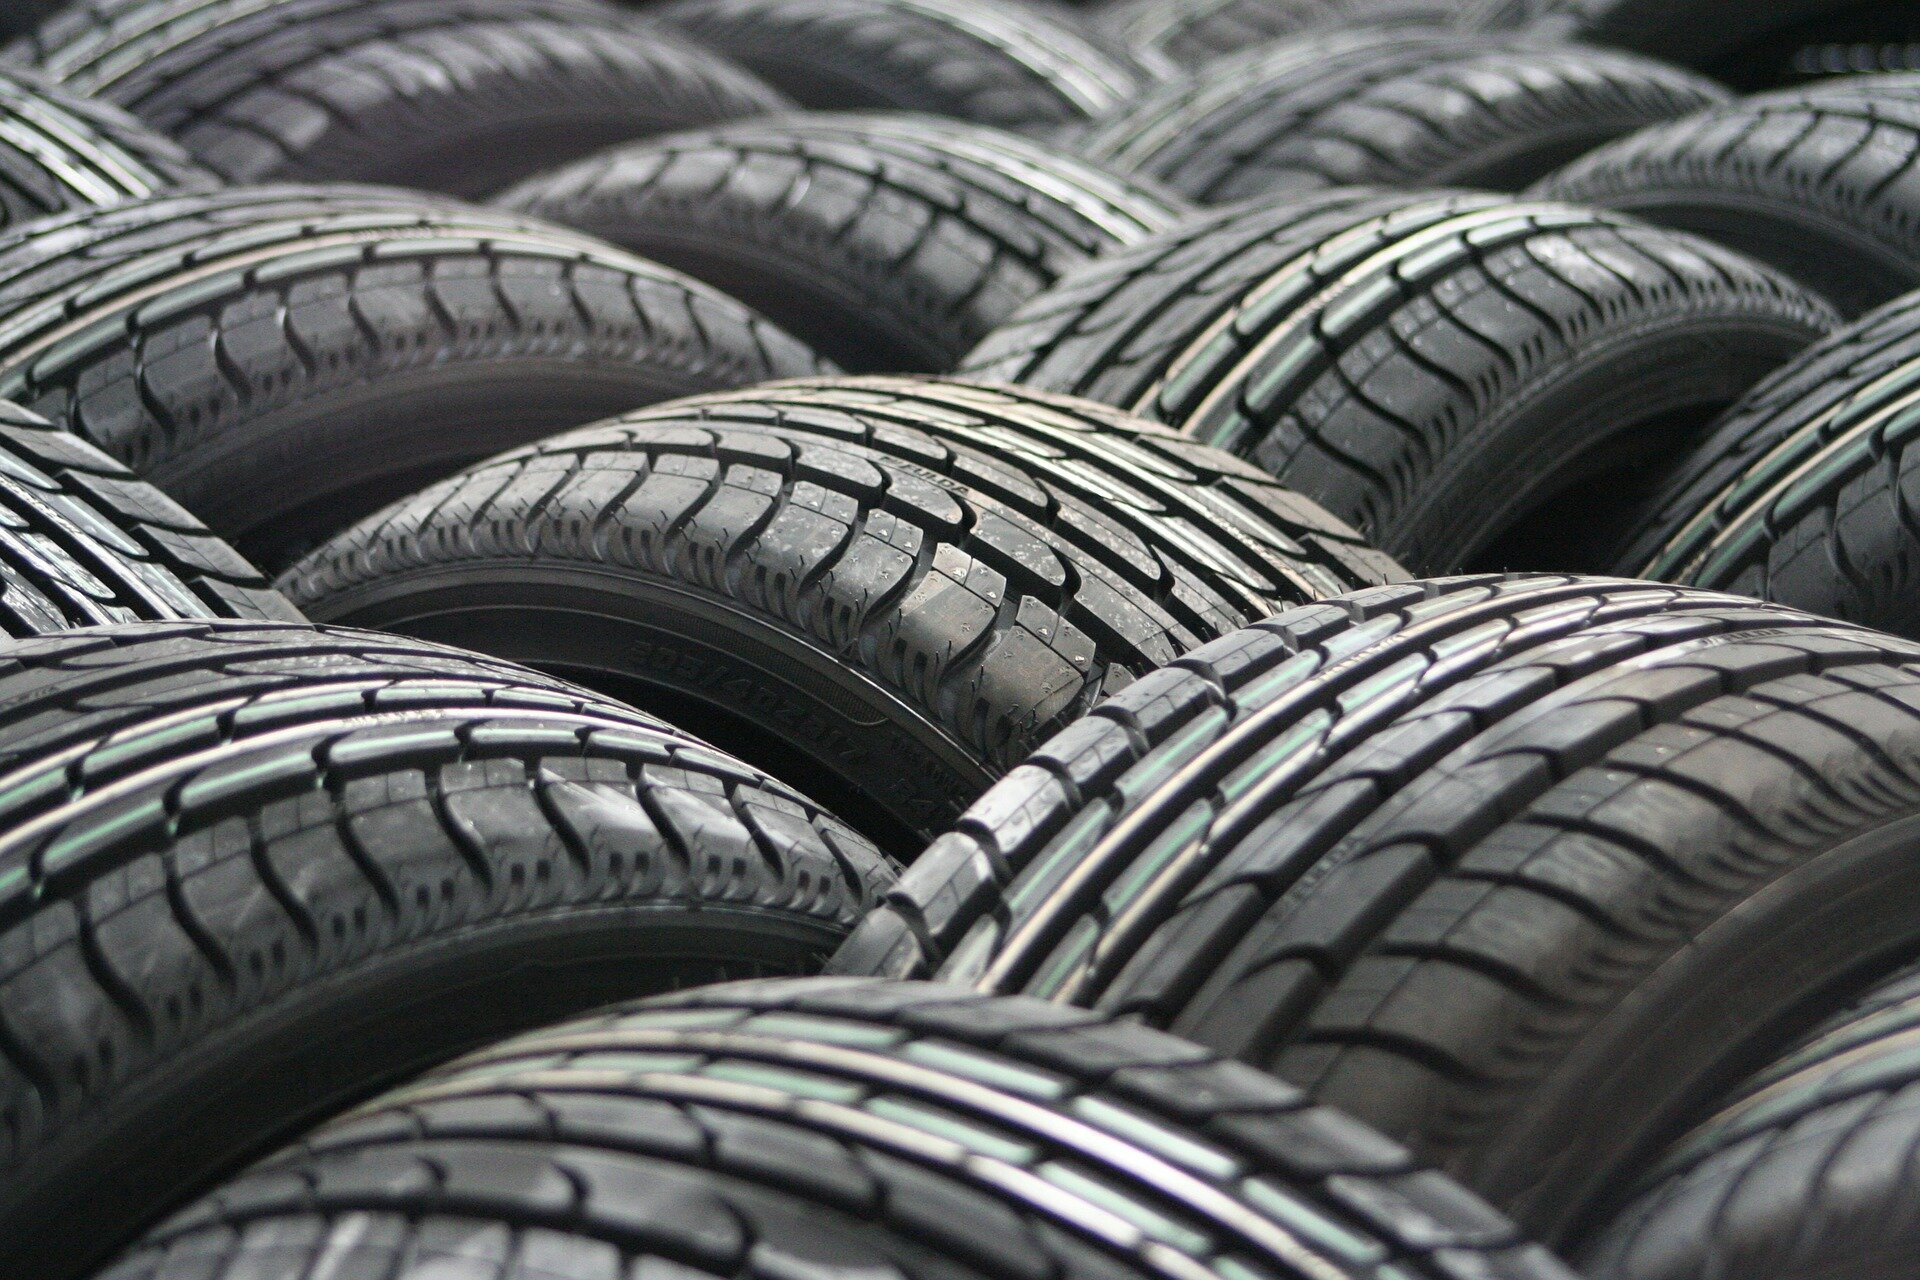 Fibers from Old Tires Can Improve Fire Resistance of Concrete